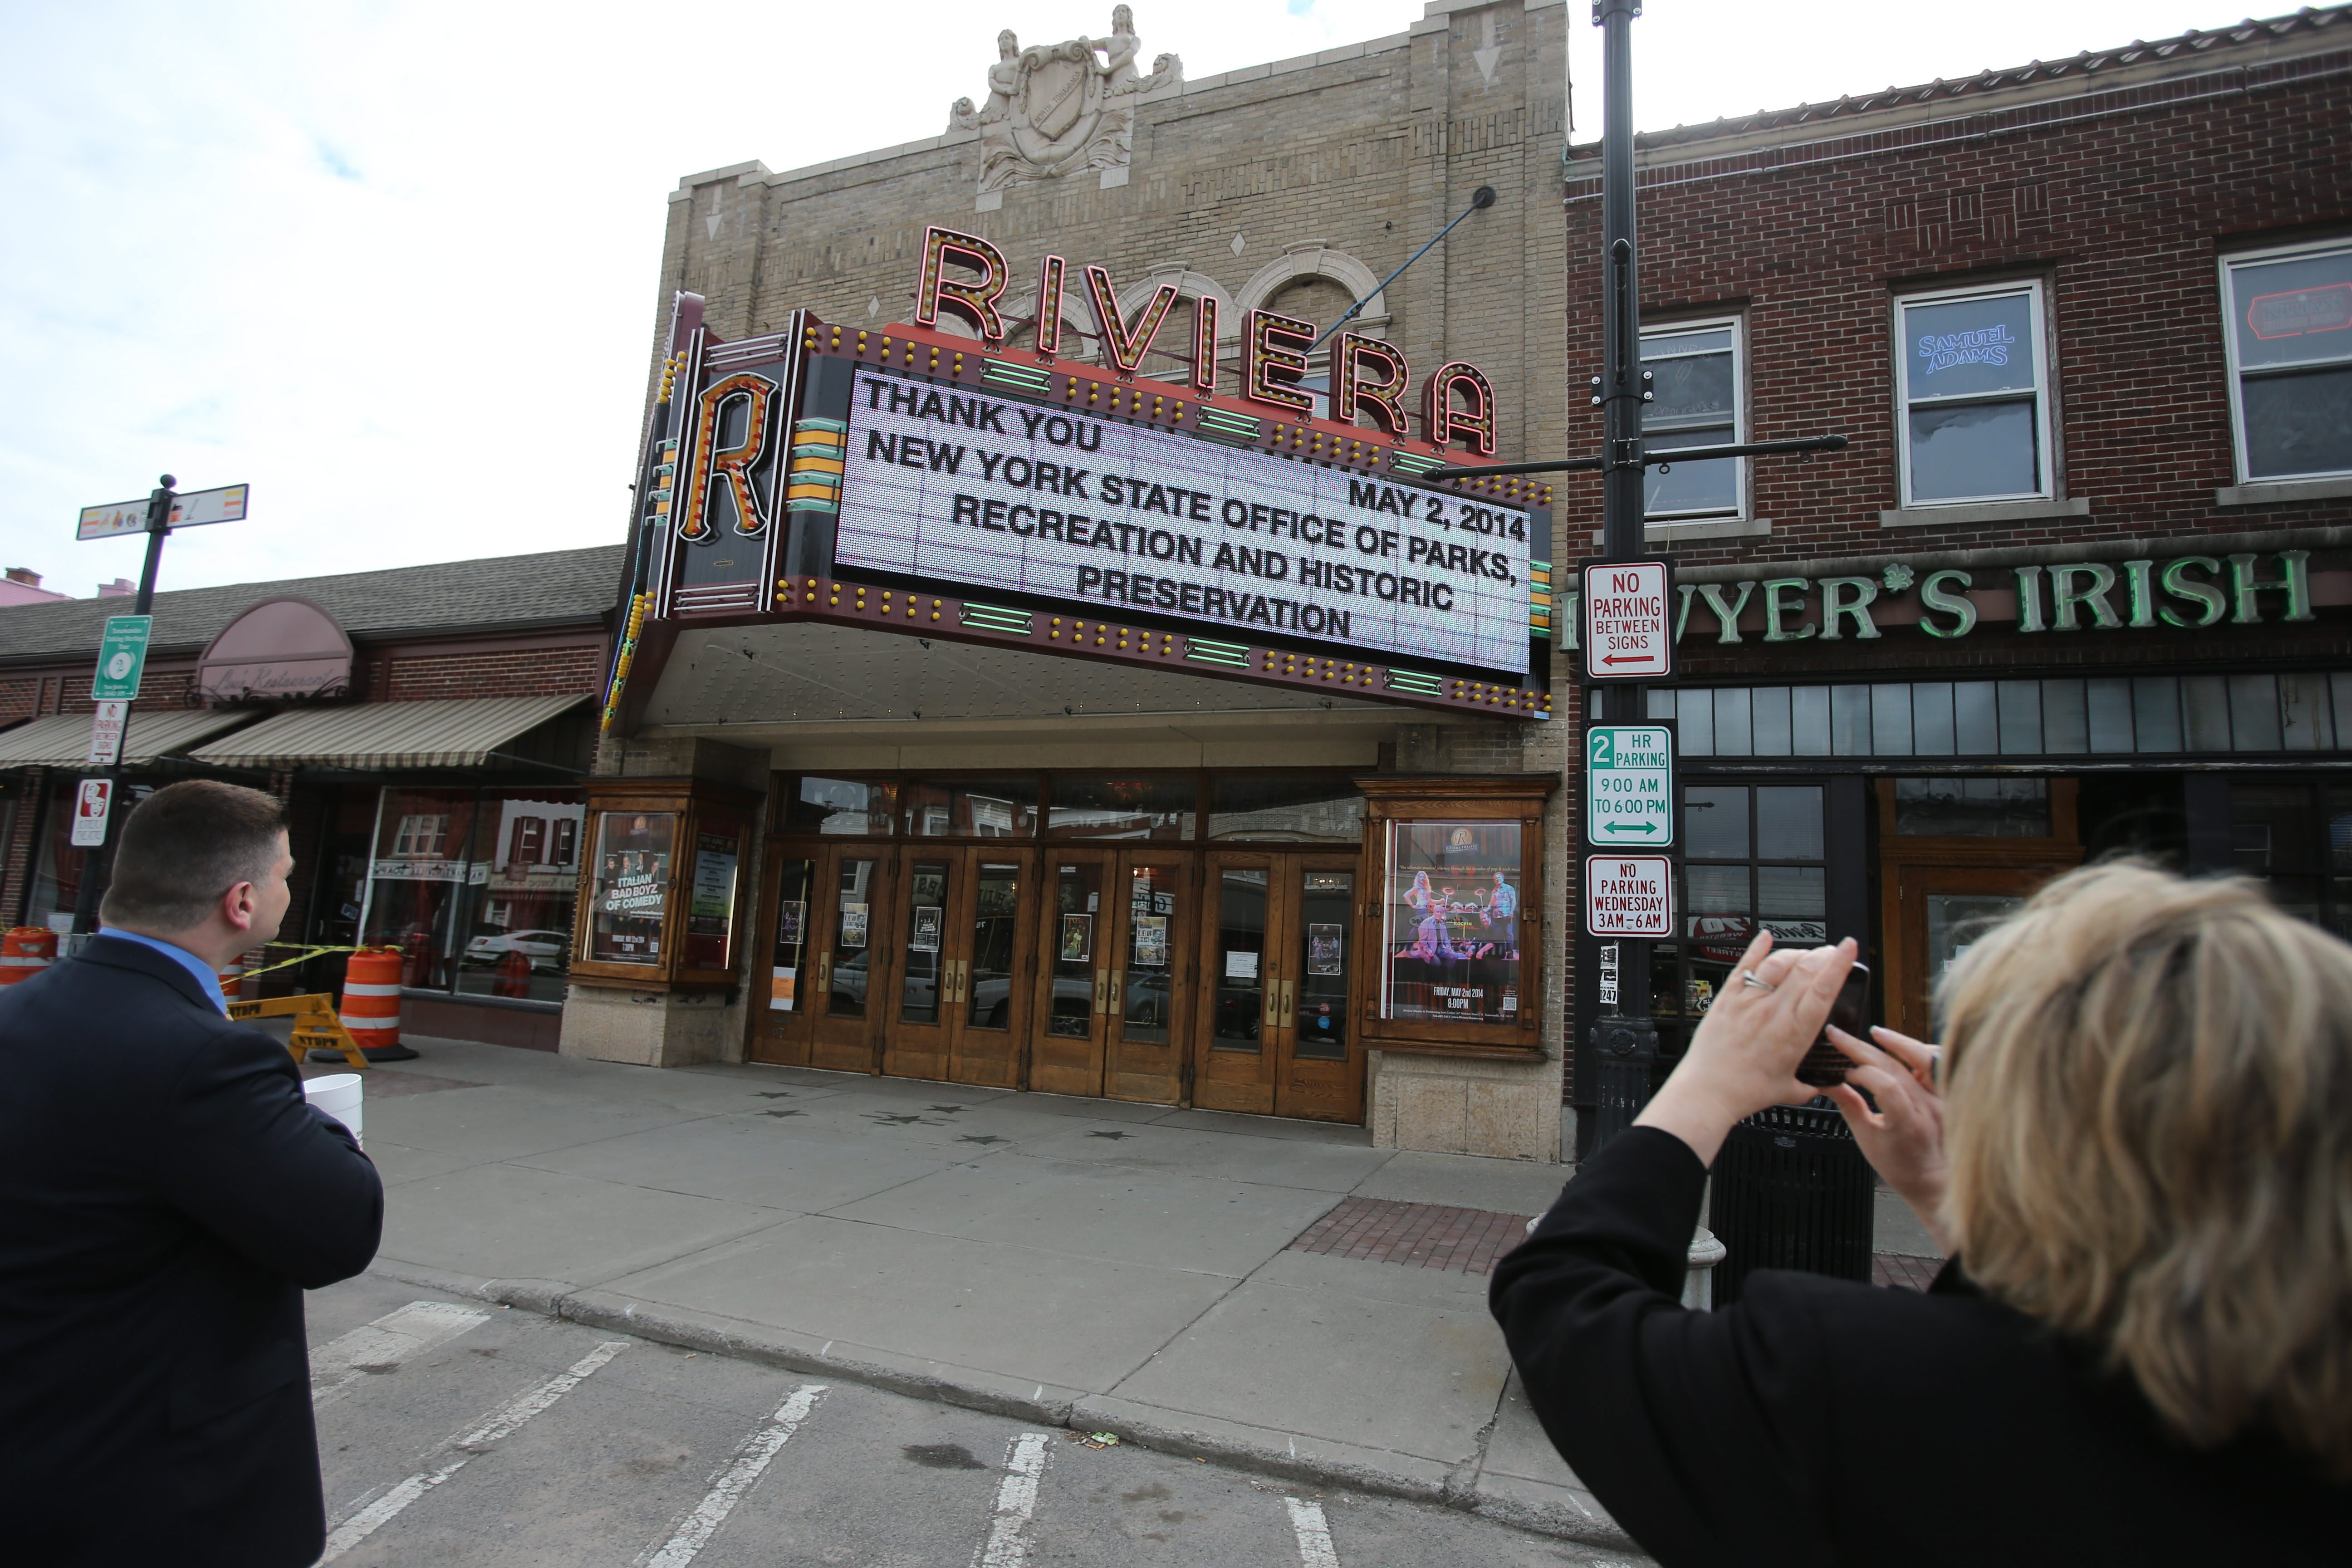 Gary J. Roleau, director of development, and Pamm Lent of Empire State Development admire the restored marquee at the Riviera Theatre in North Tonawanda Friday.